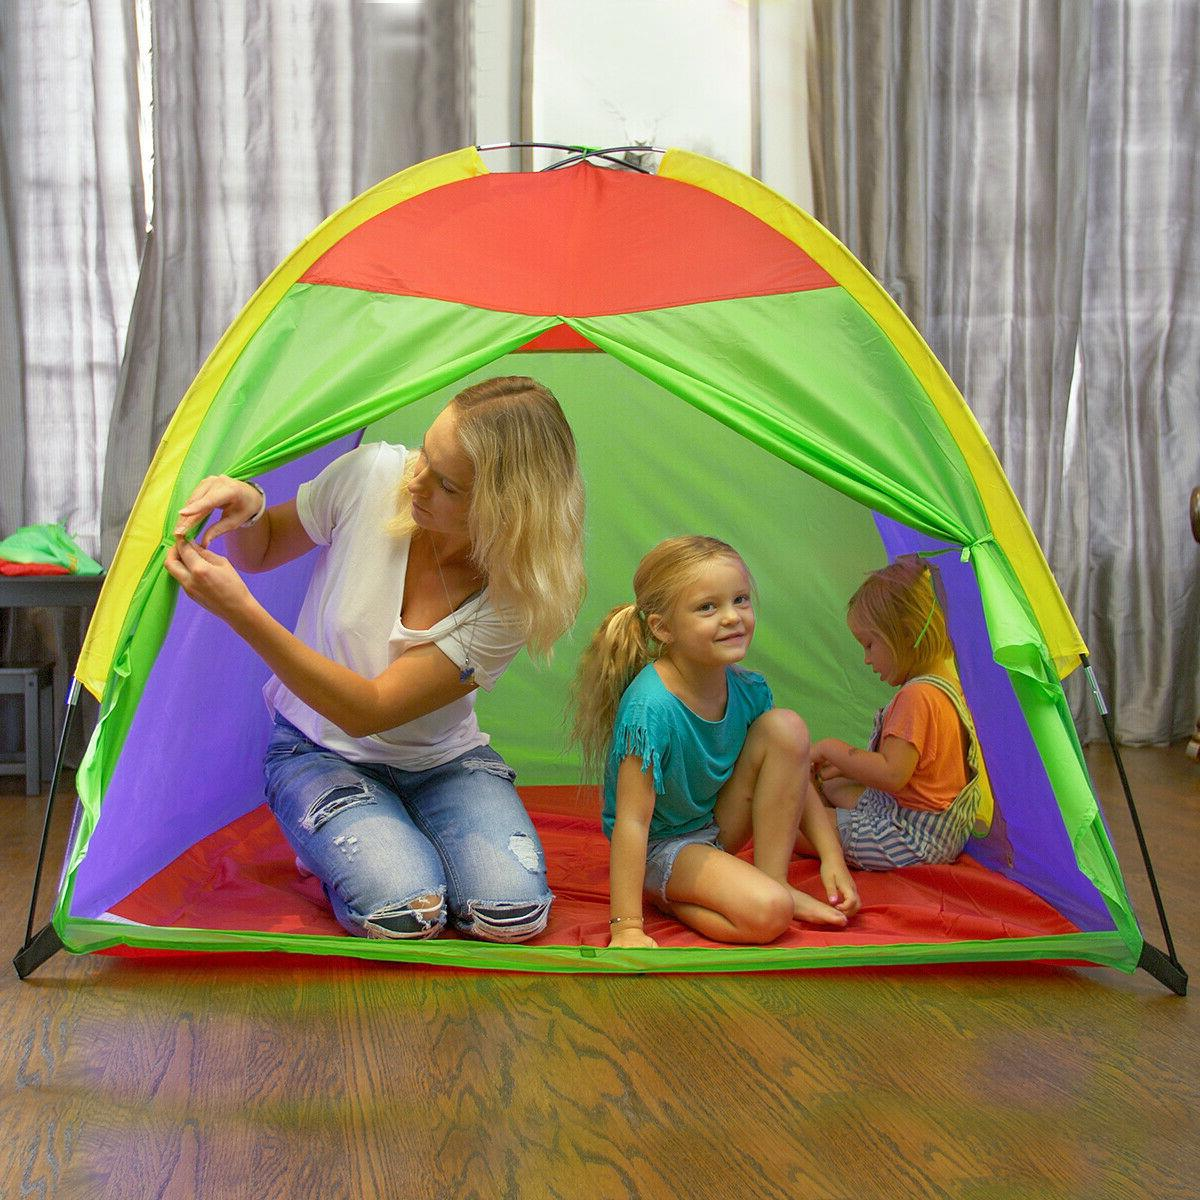 Kids Tents Children Play Toy Playhouse Rainbow